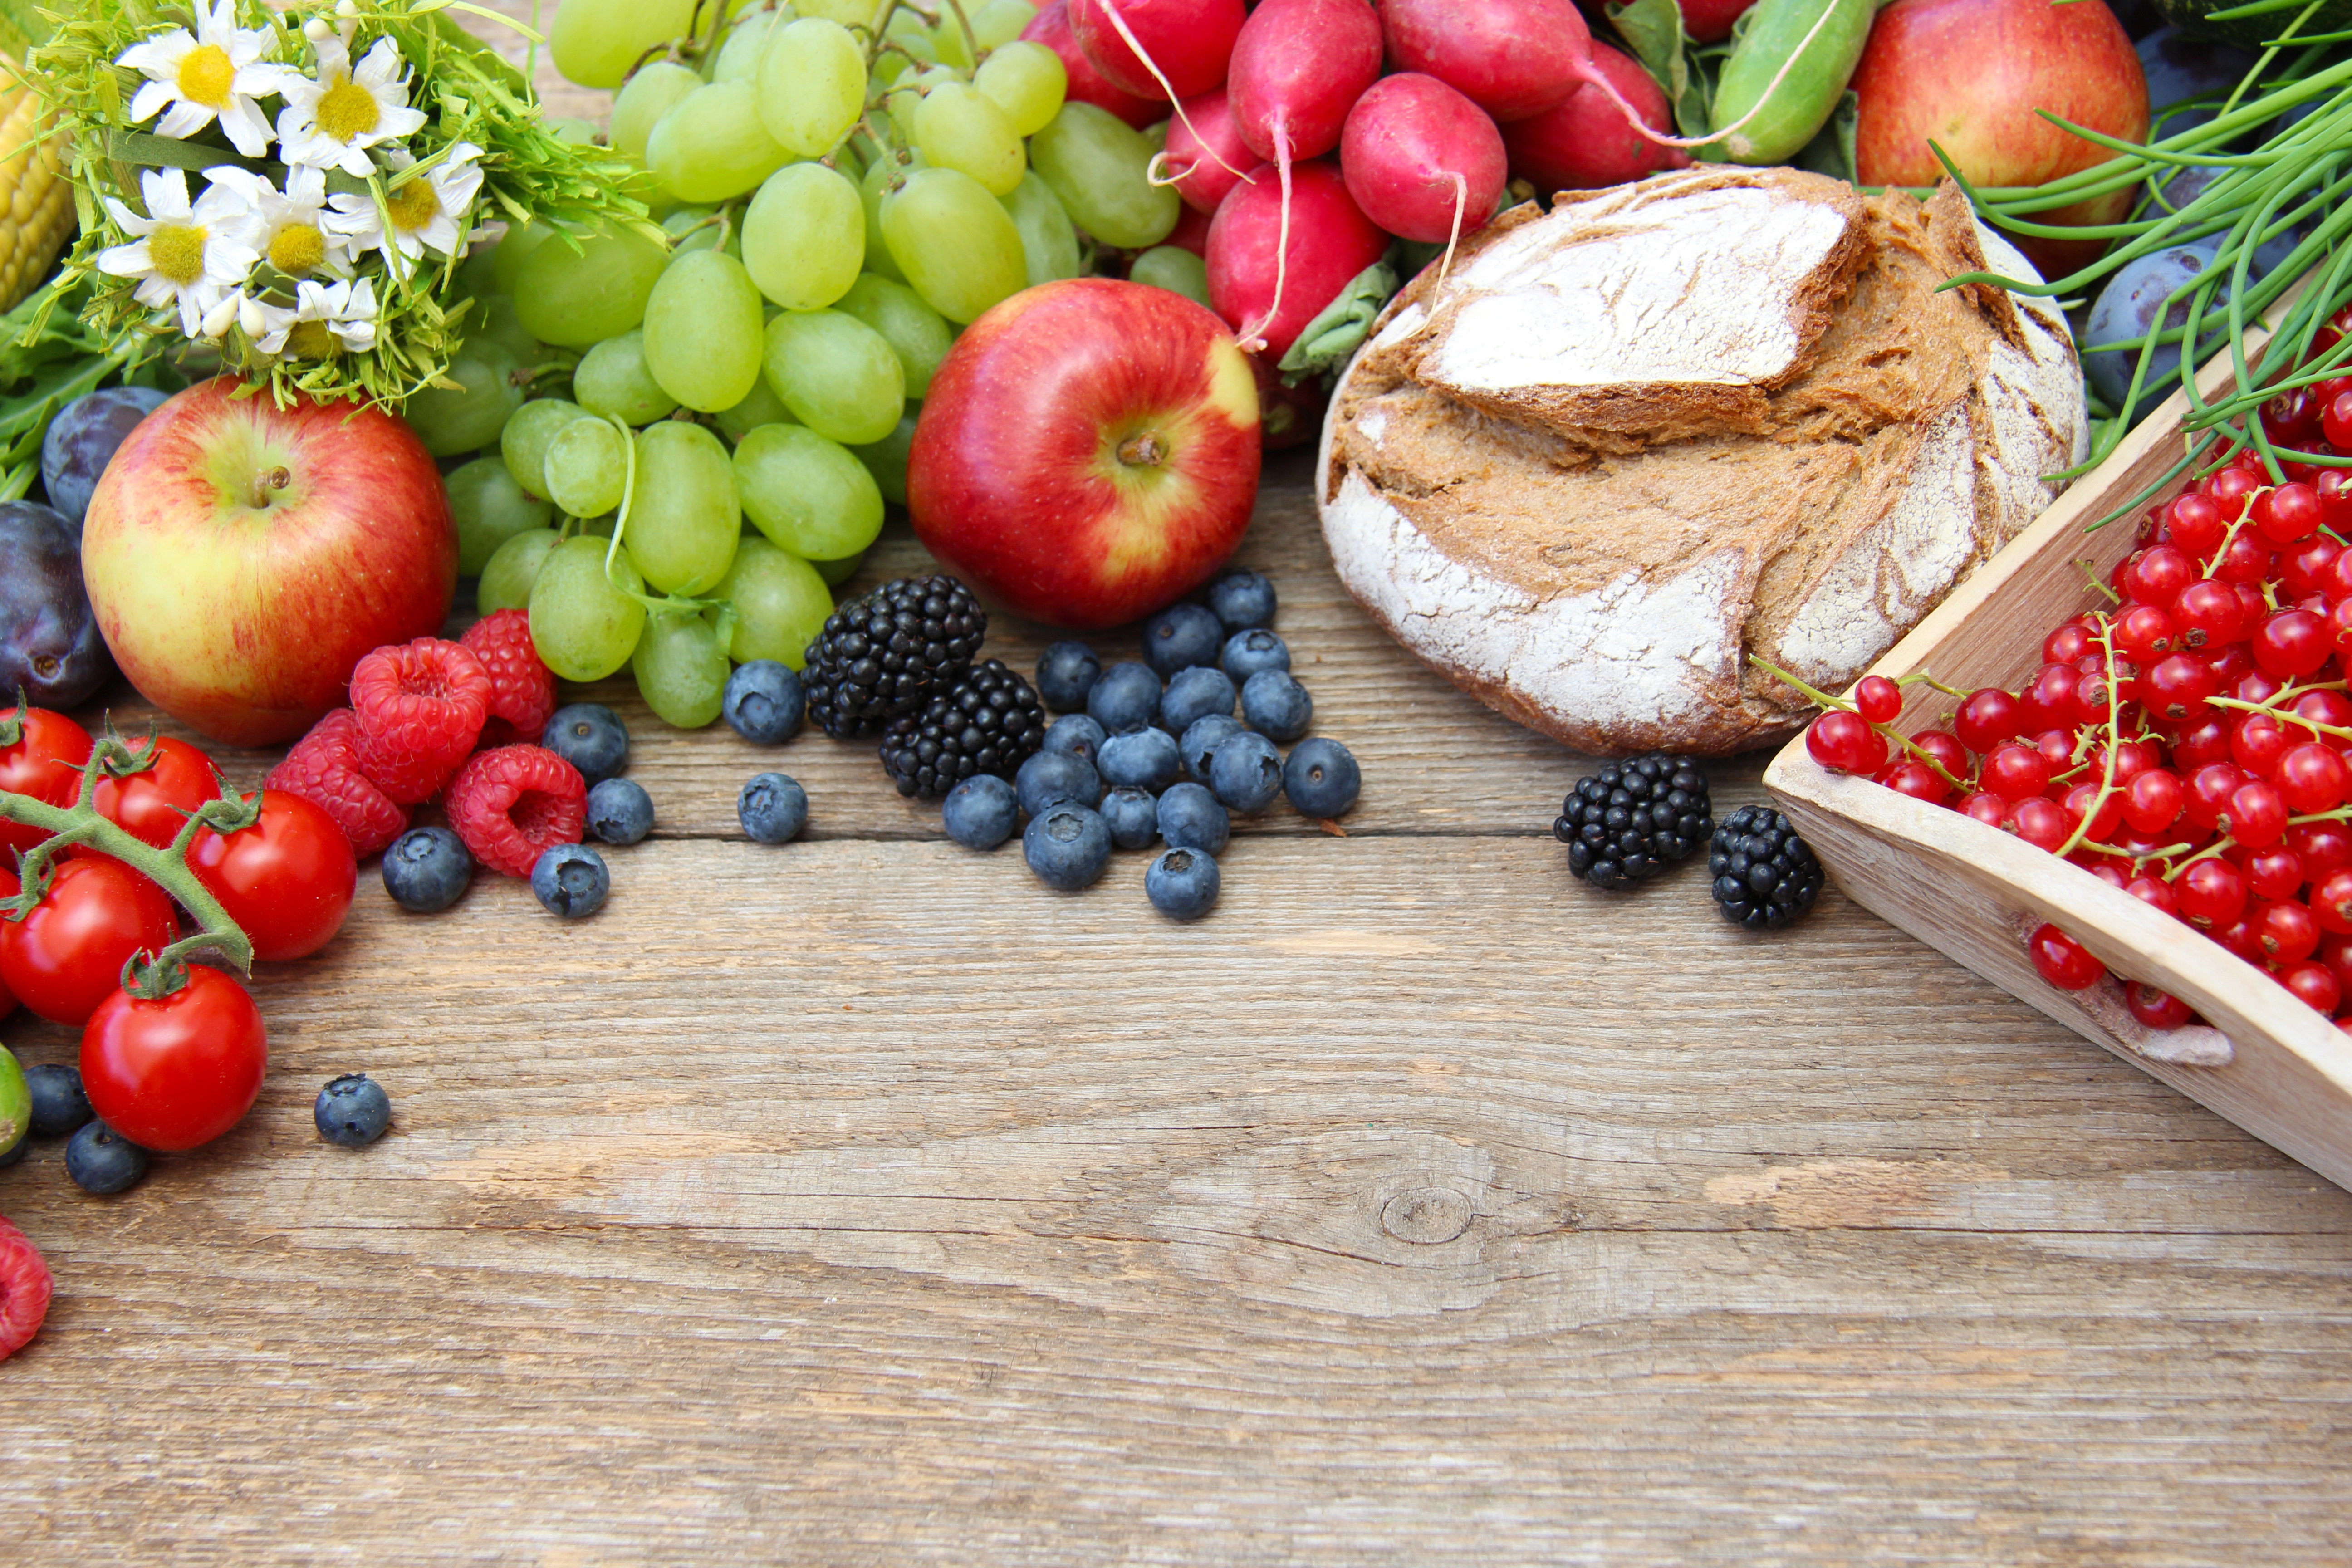 How to consume an adequate amount of high-fiber foods